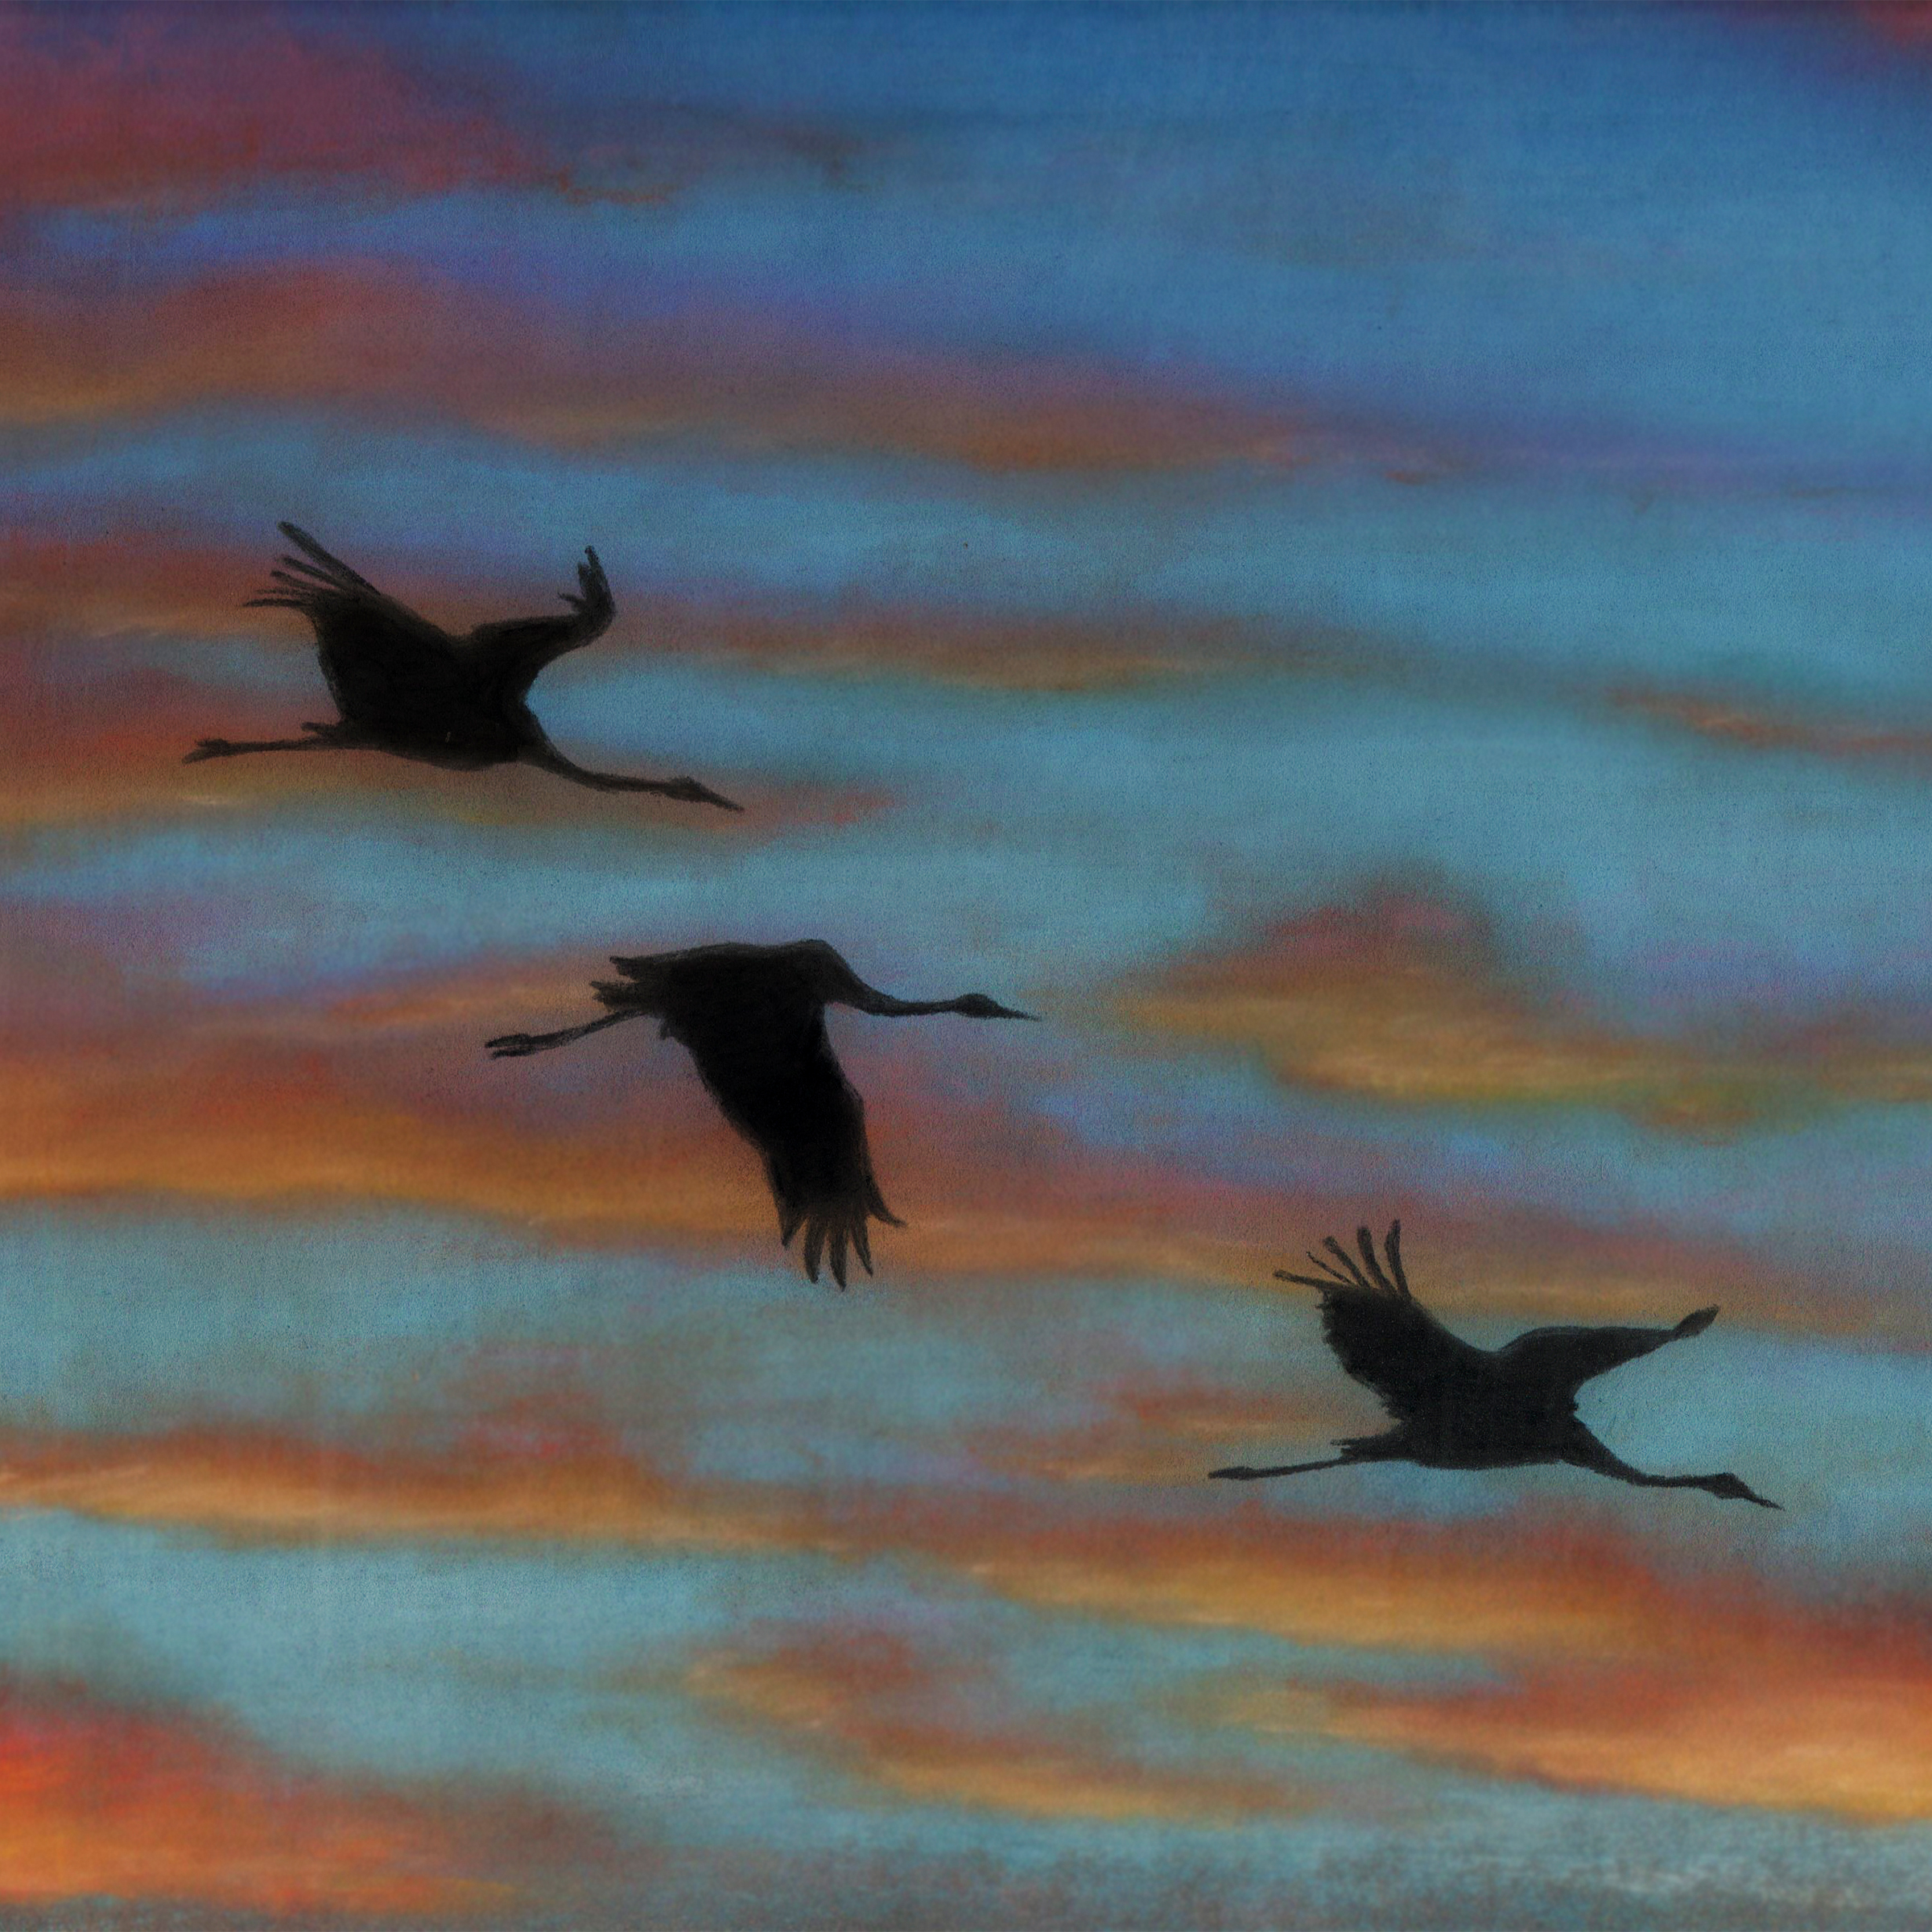 Sunset Cranes illustration